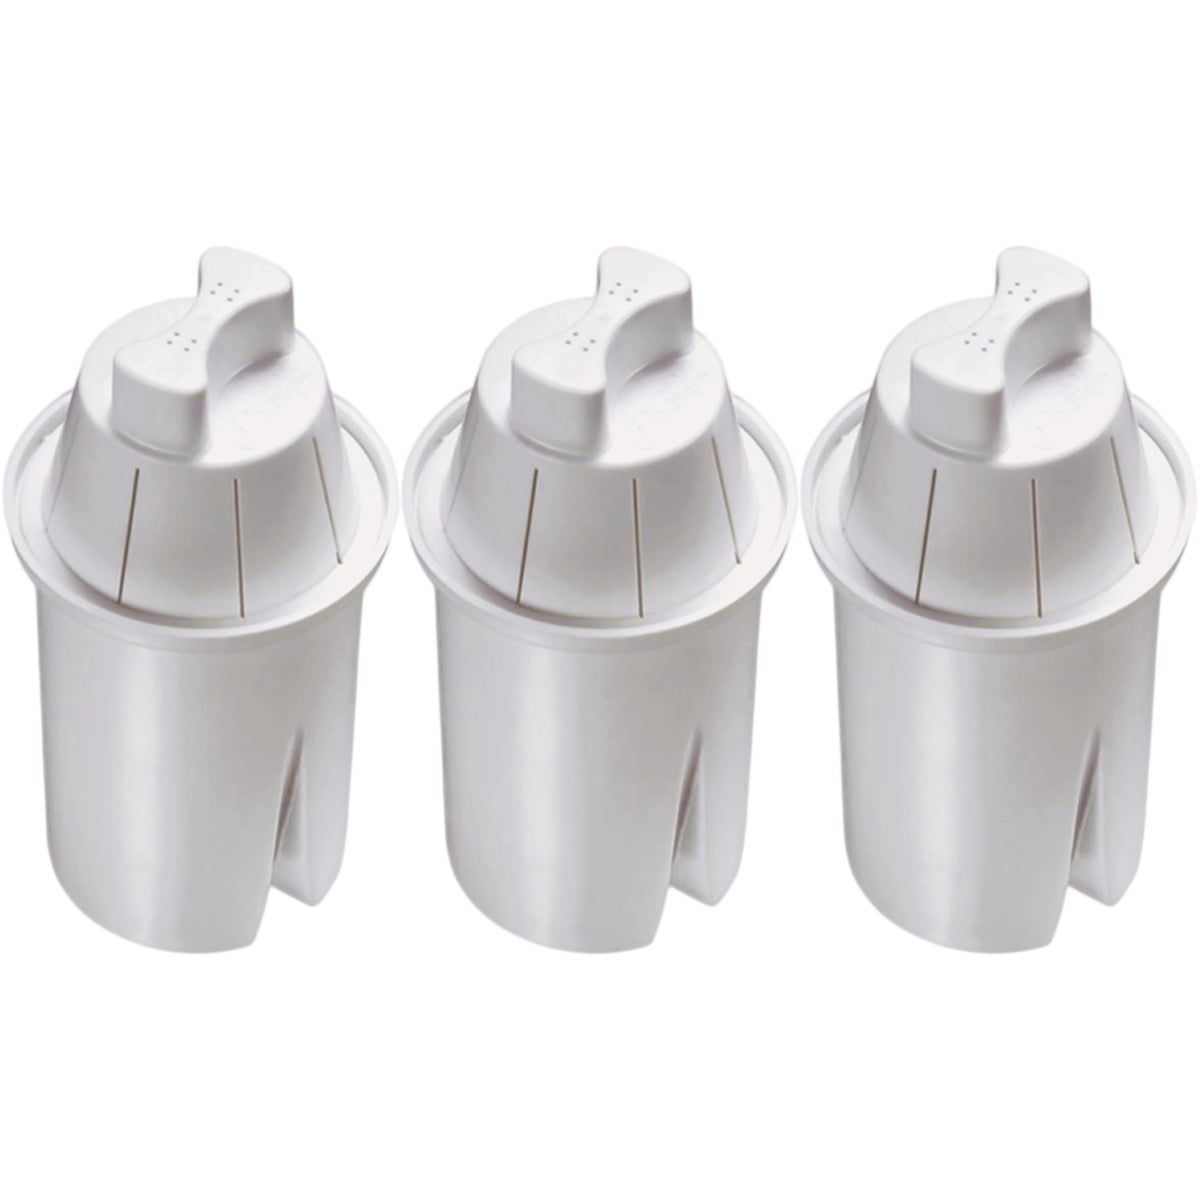 3PK REPLACE WATER FILTER - PR-3 by Culligan